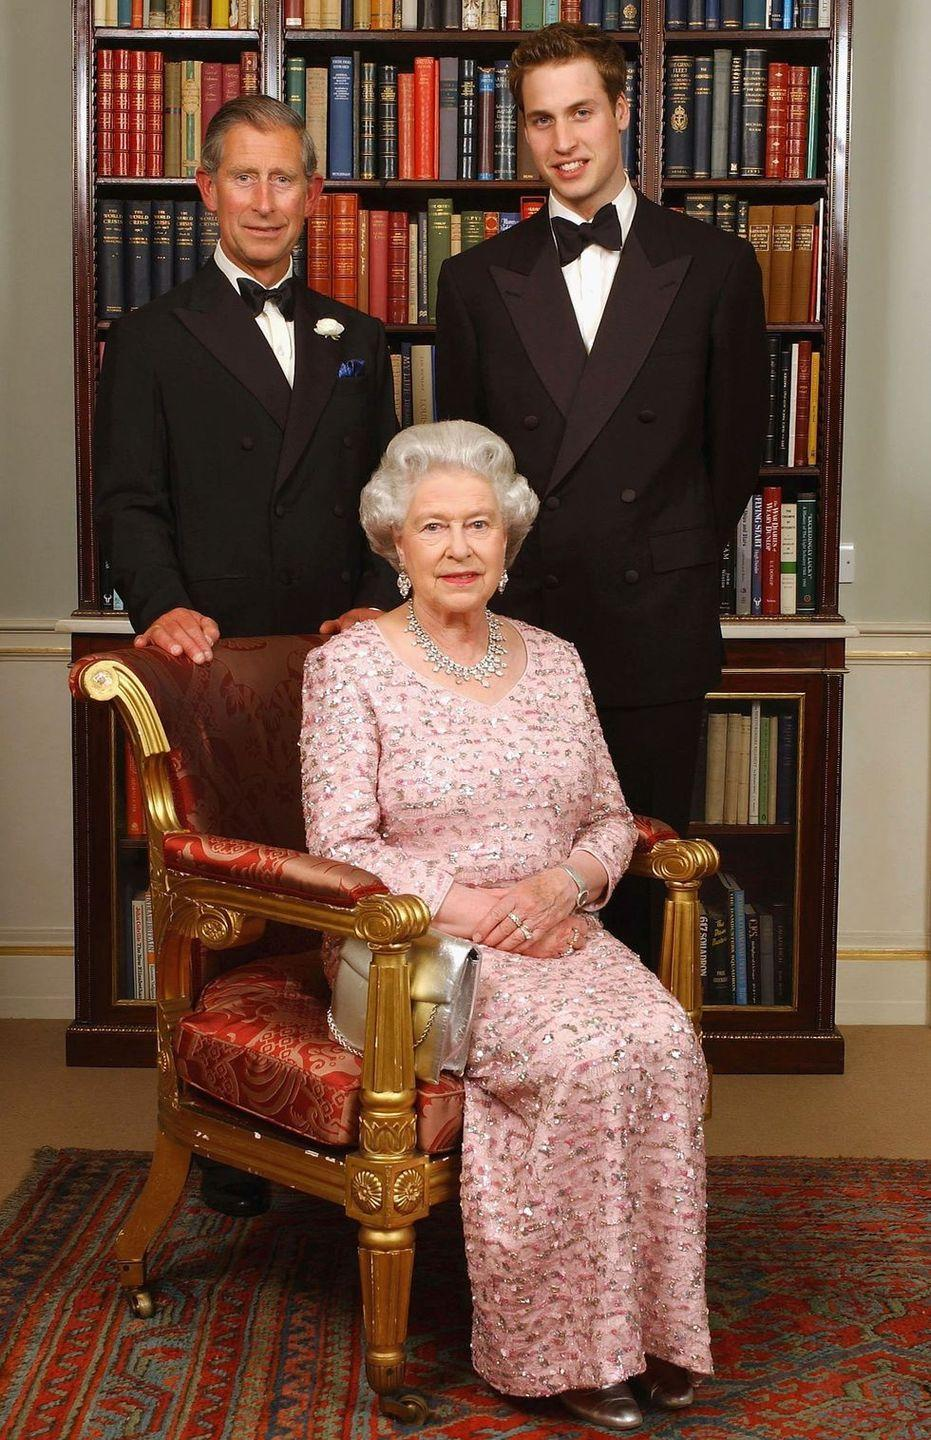 <p>Queen Elizabeth II sits in front of her son Prince Charles (second in line for the throne) and Prince William (third in line for the throne) at the 50th anniversary of her coronation. The photo was taken at Clarence House, Charles' official residence.</p>